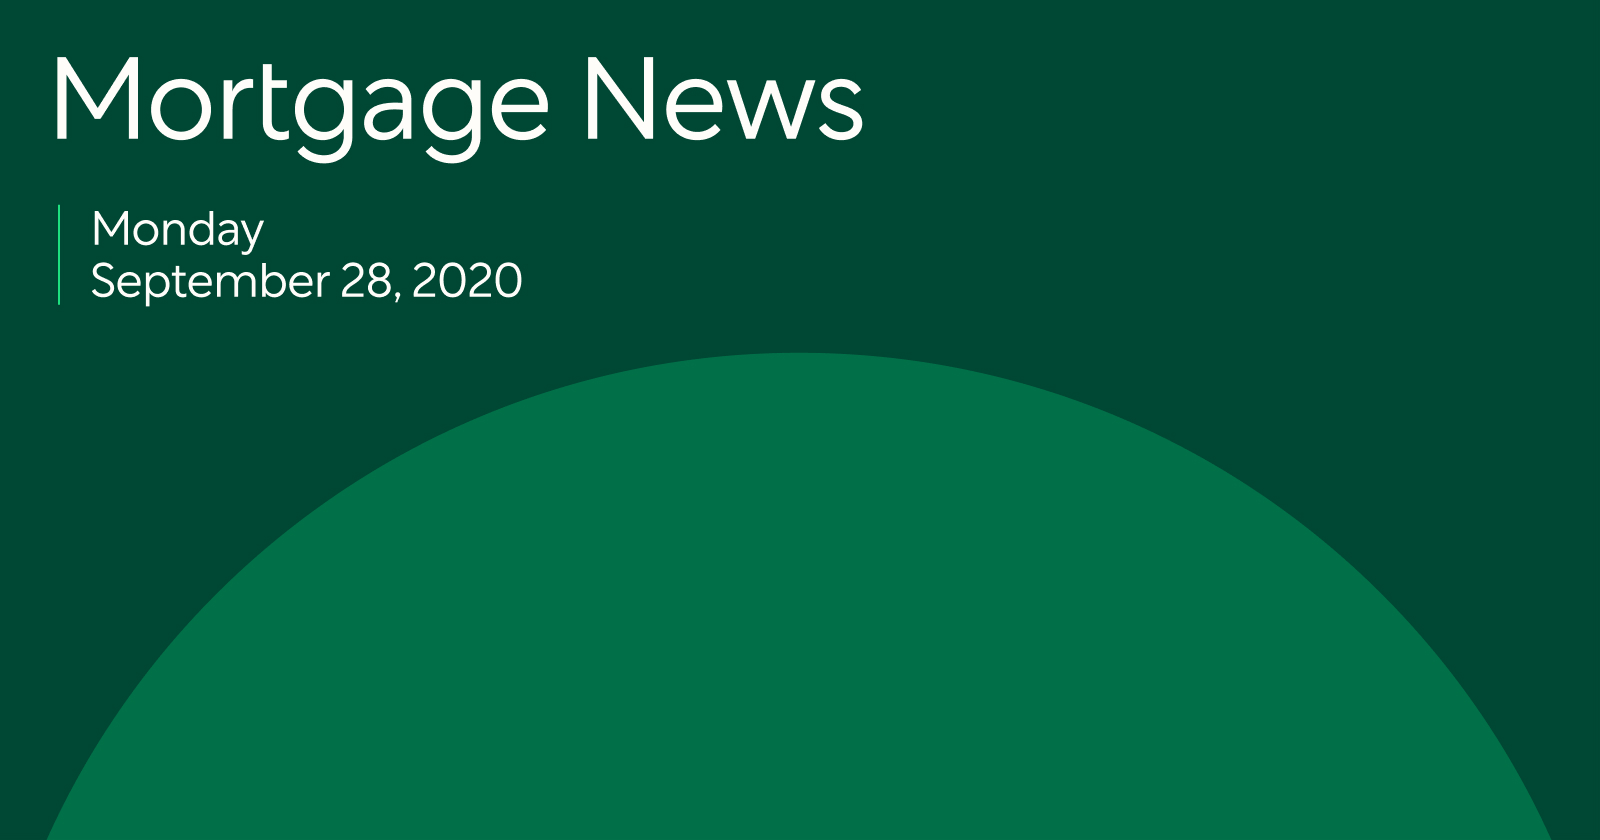 mortgage news 9/28